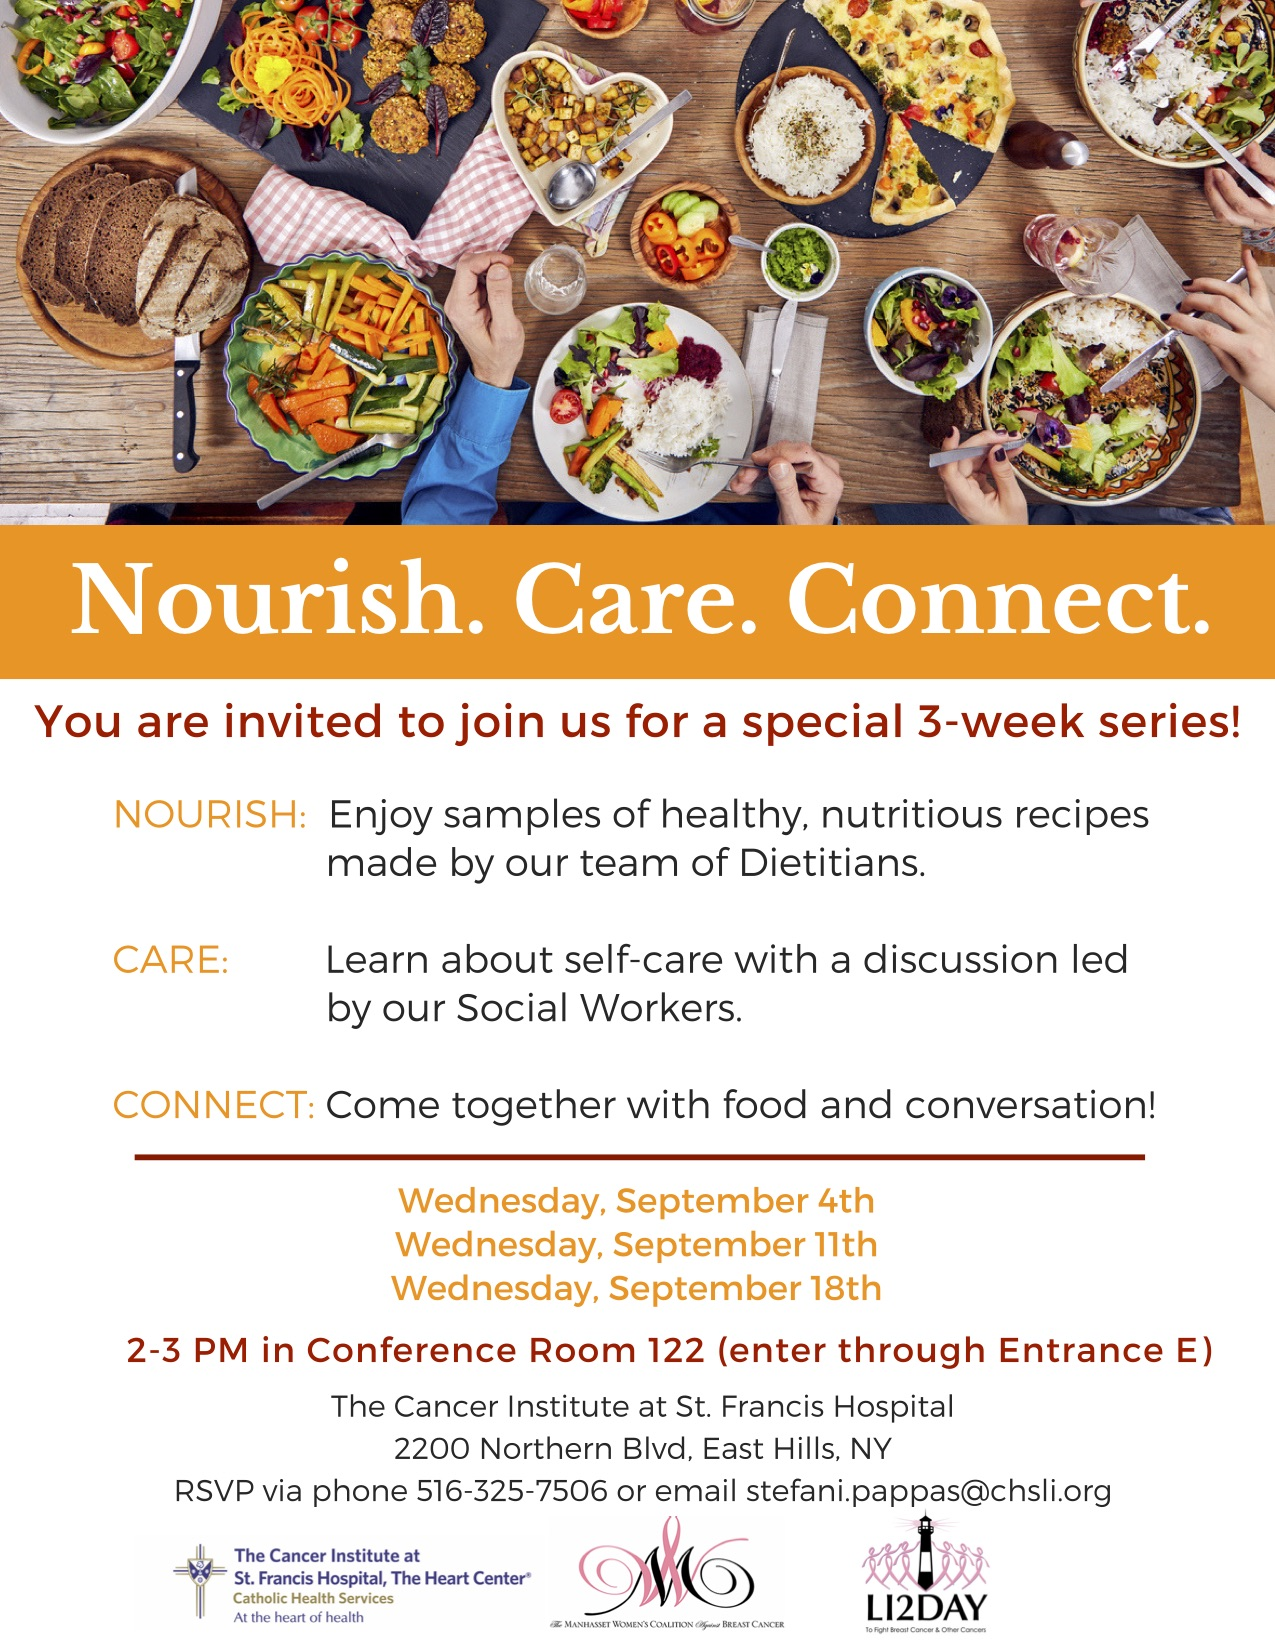 Nourish. Care. Connect 3- week series